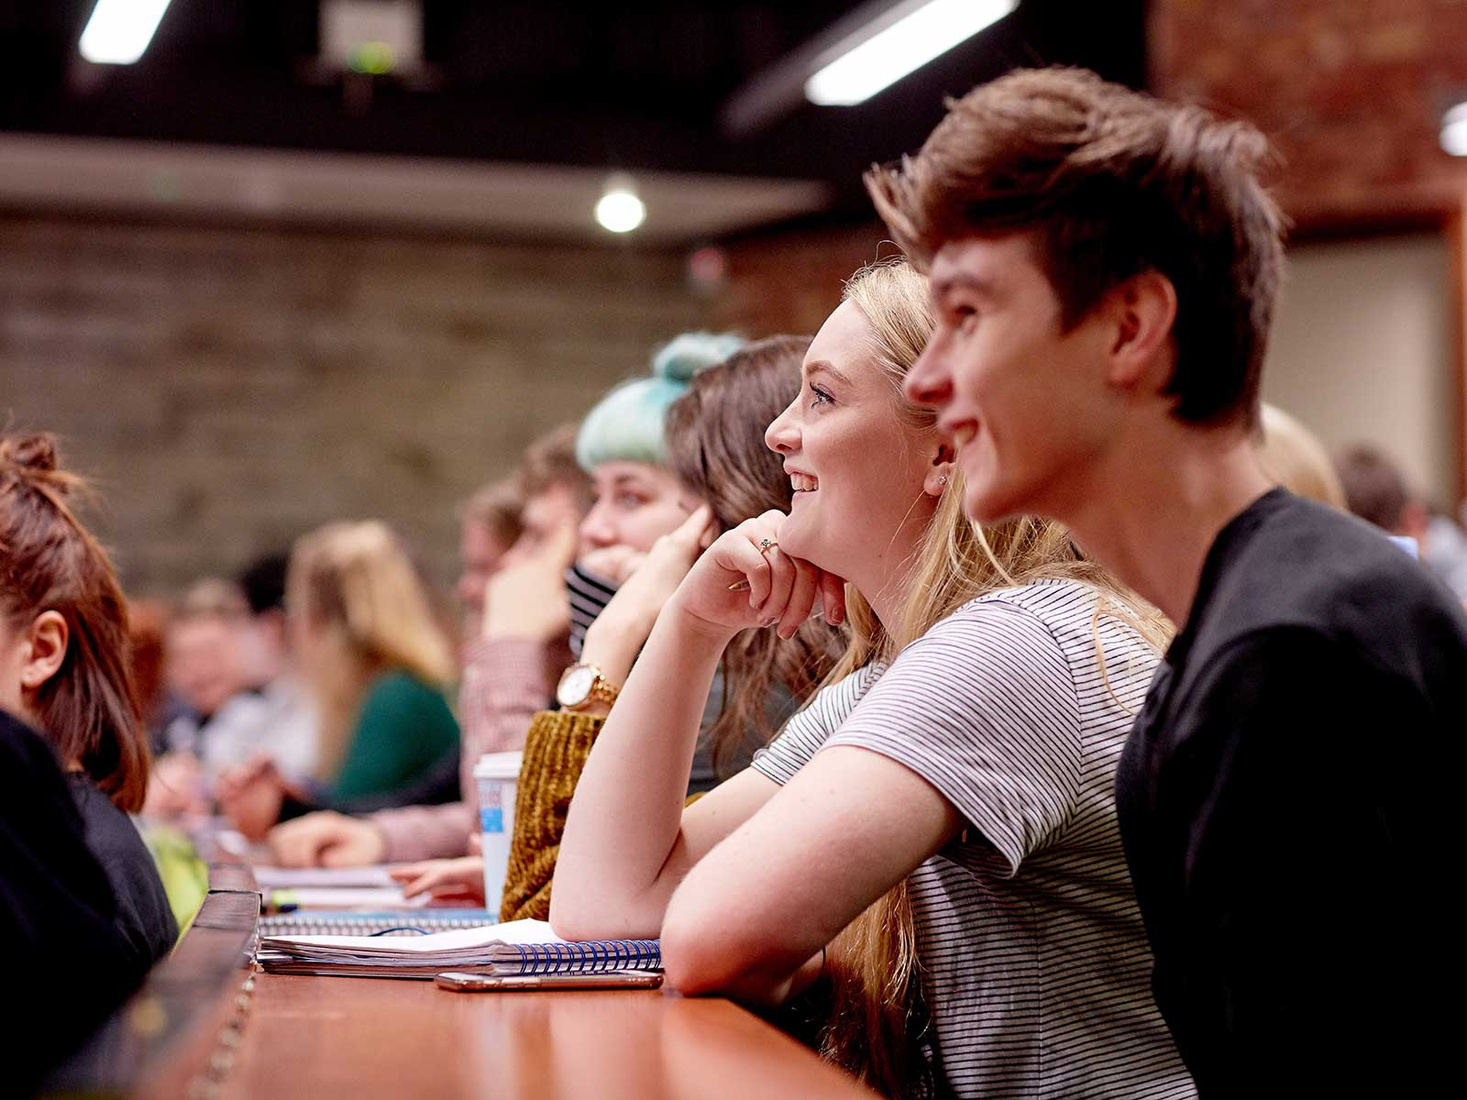 students in lectures, they are smiling